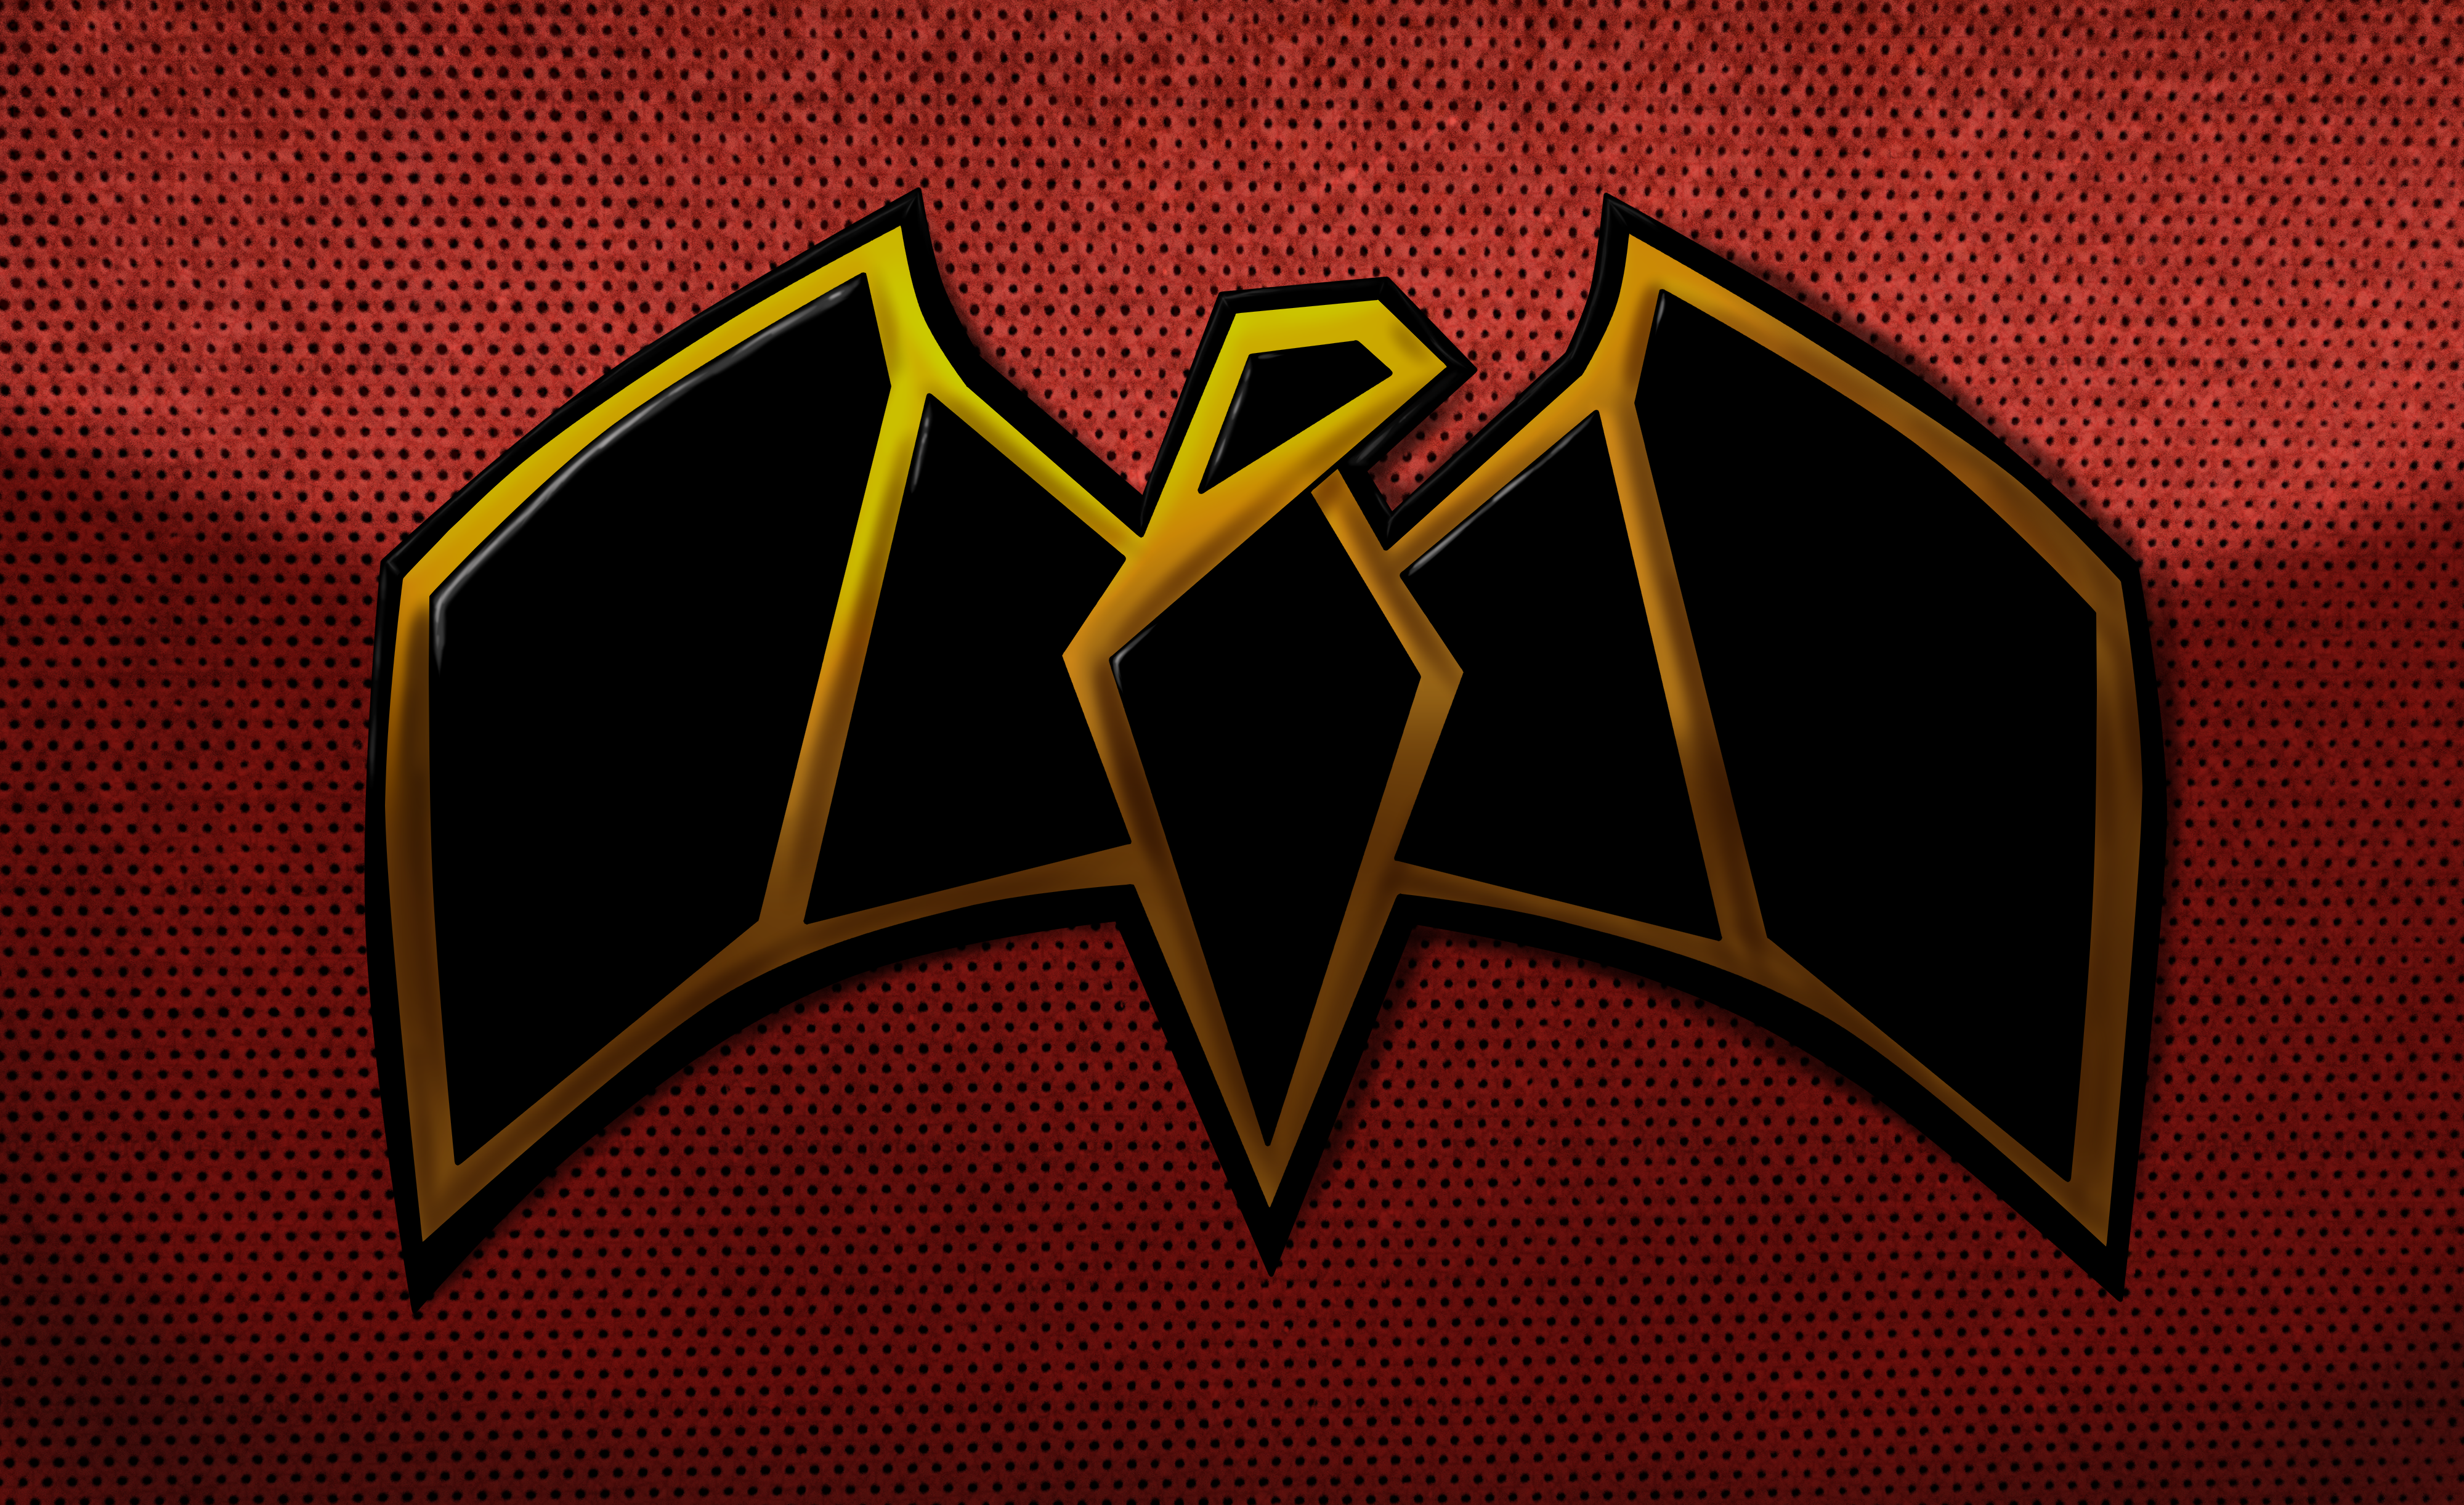 Dc robin and nightwing favourites by momopjonny on deviantart gloade 9 0 earth 2 robin symbol background by bobbenkatzen buycottarizona Choice Image